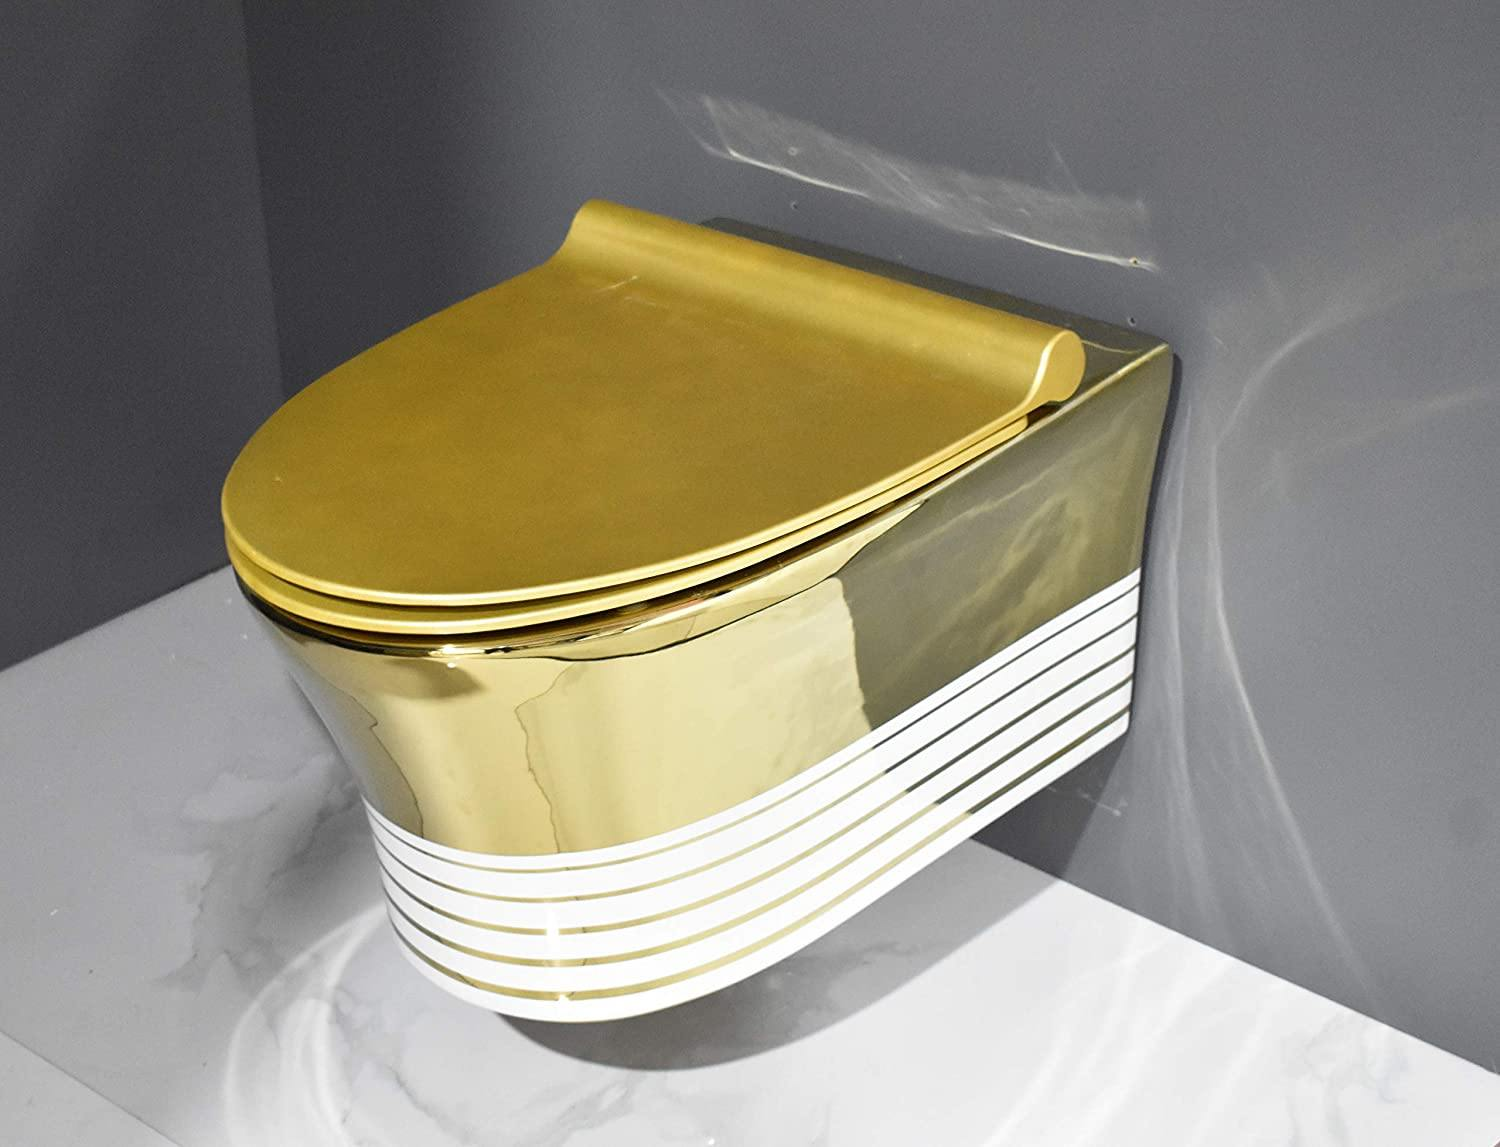 Wall Hung Toilet Bowl Bathroom Oval Toilet Bowl Wall Mount Toilet With Rimless Flush 56 x 38 x 36 CM Gold White Color Stripes - Home Store Cart